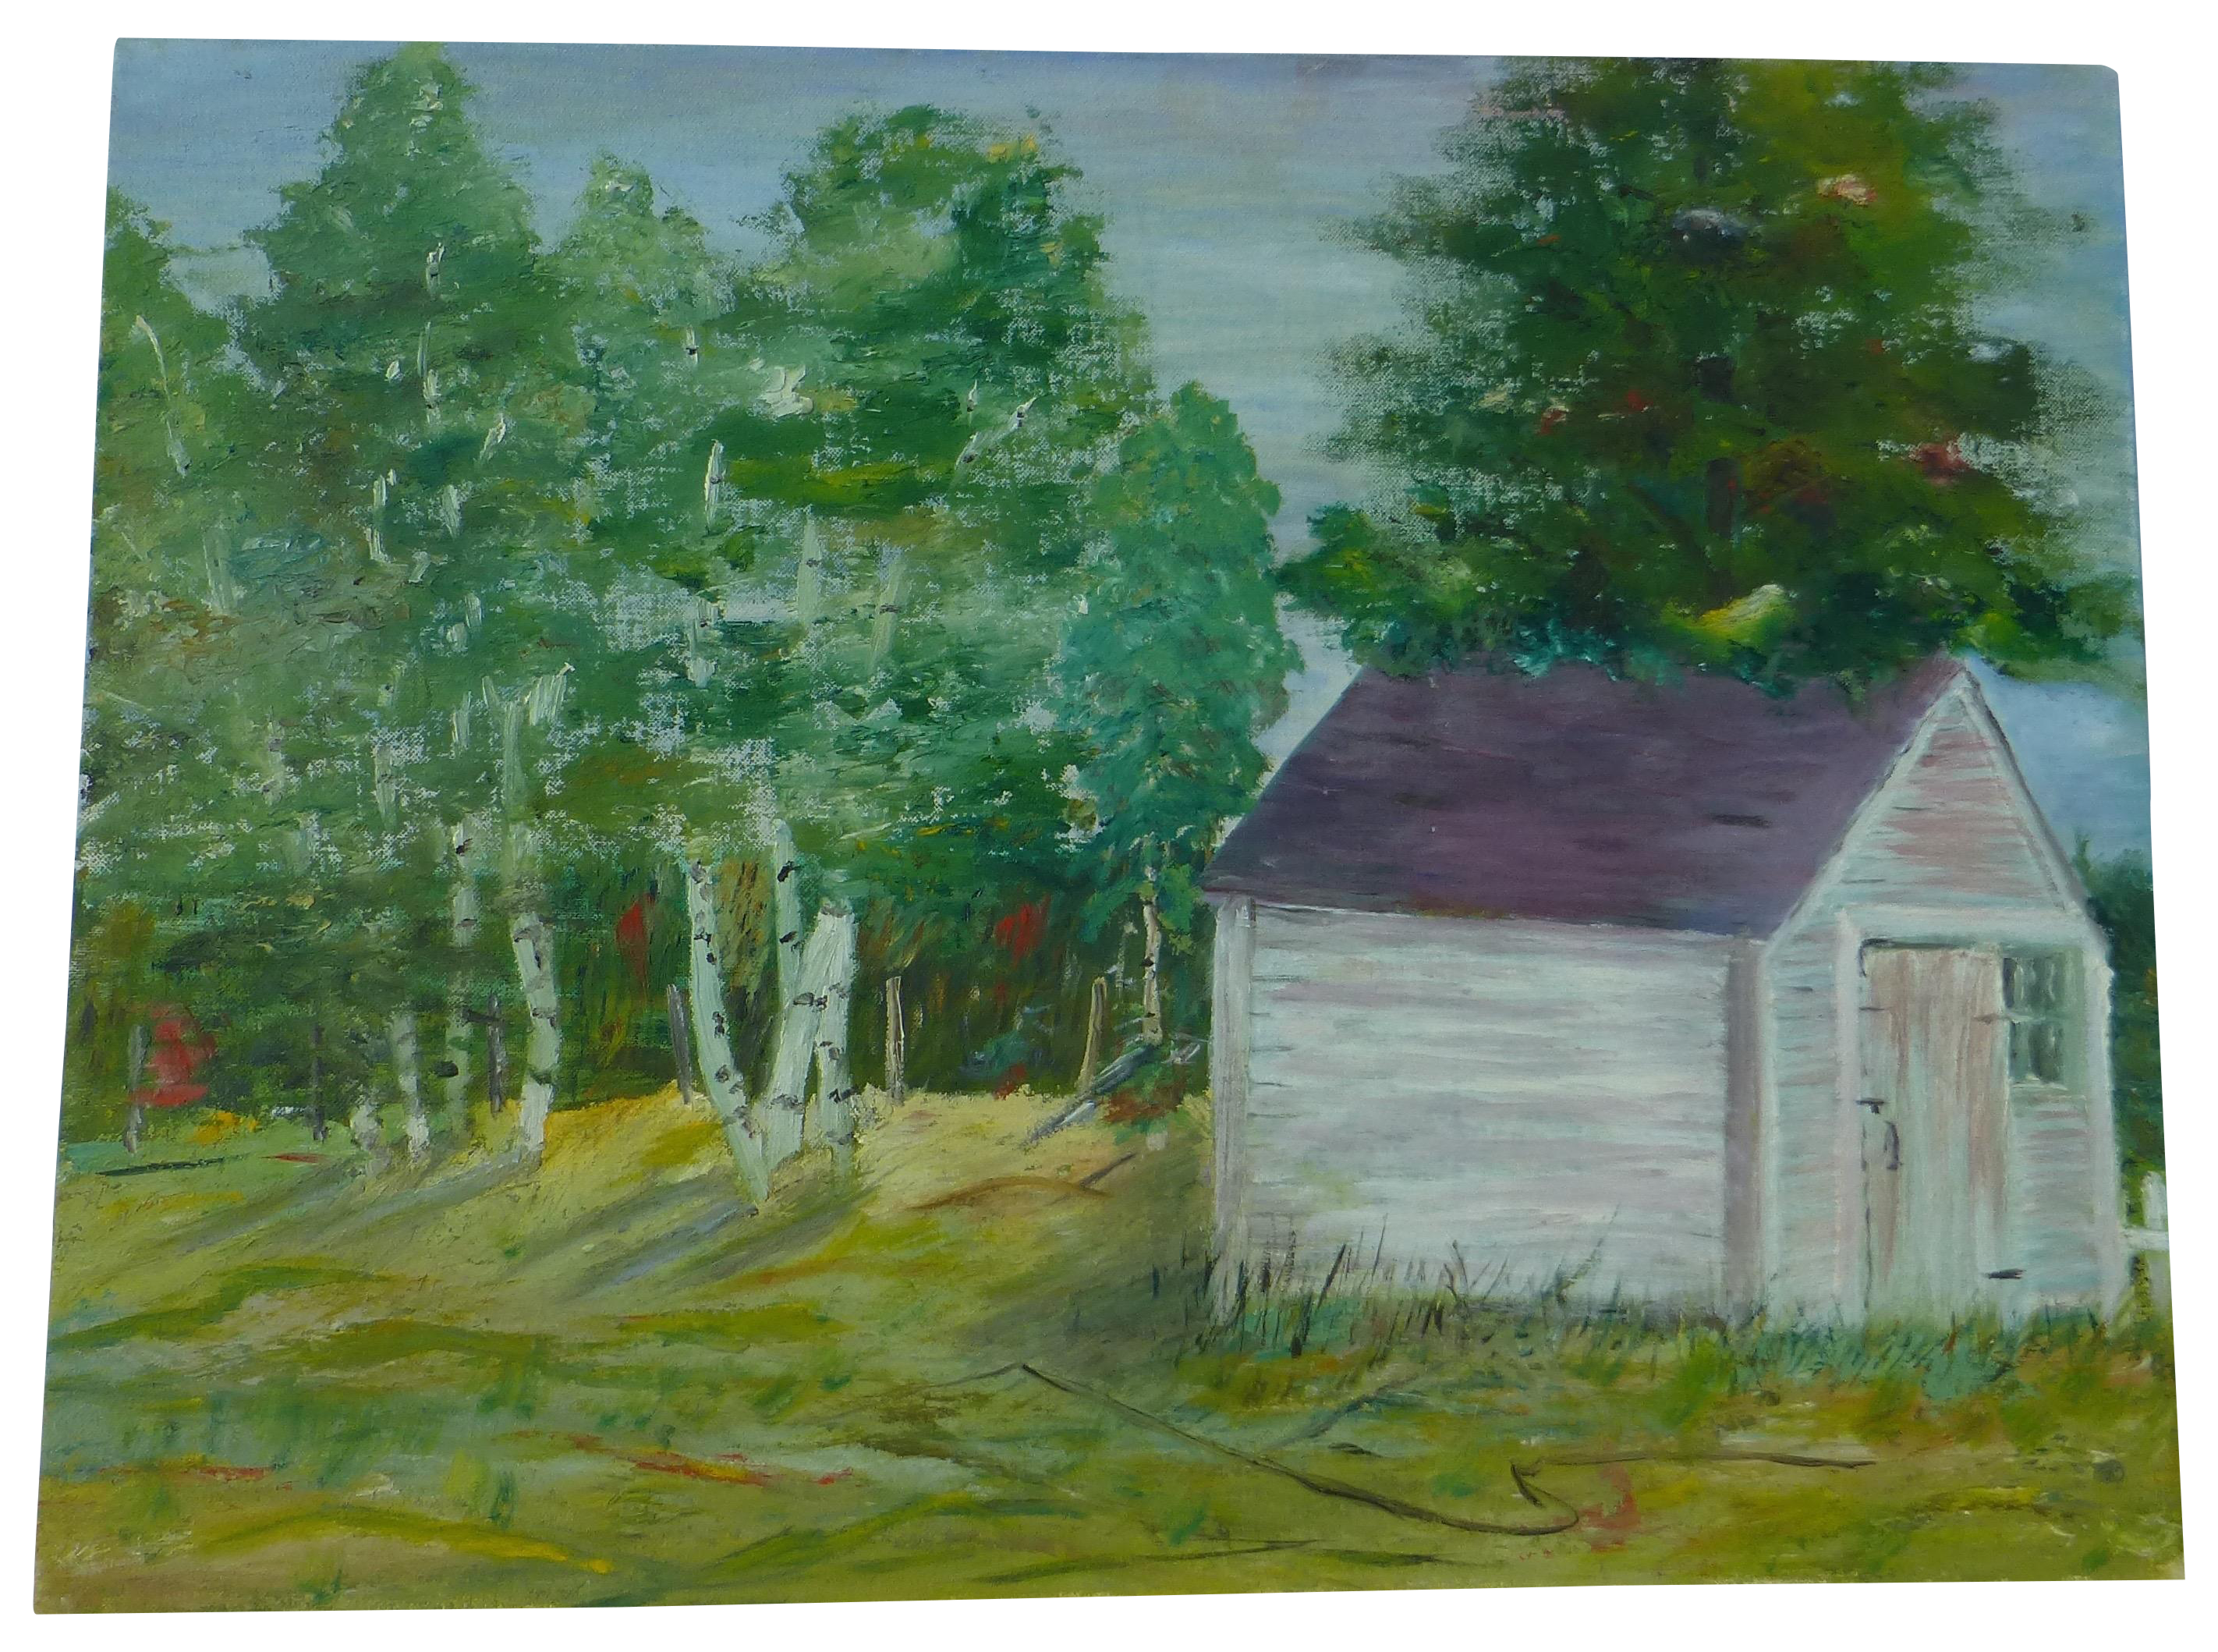 Mcm Painting Of Cabin In Woods H L Musgrave Chairish